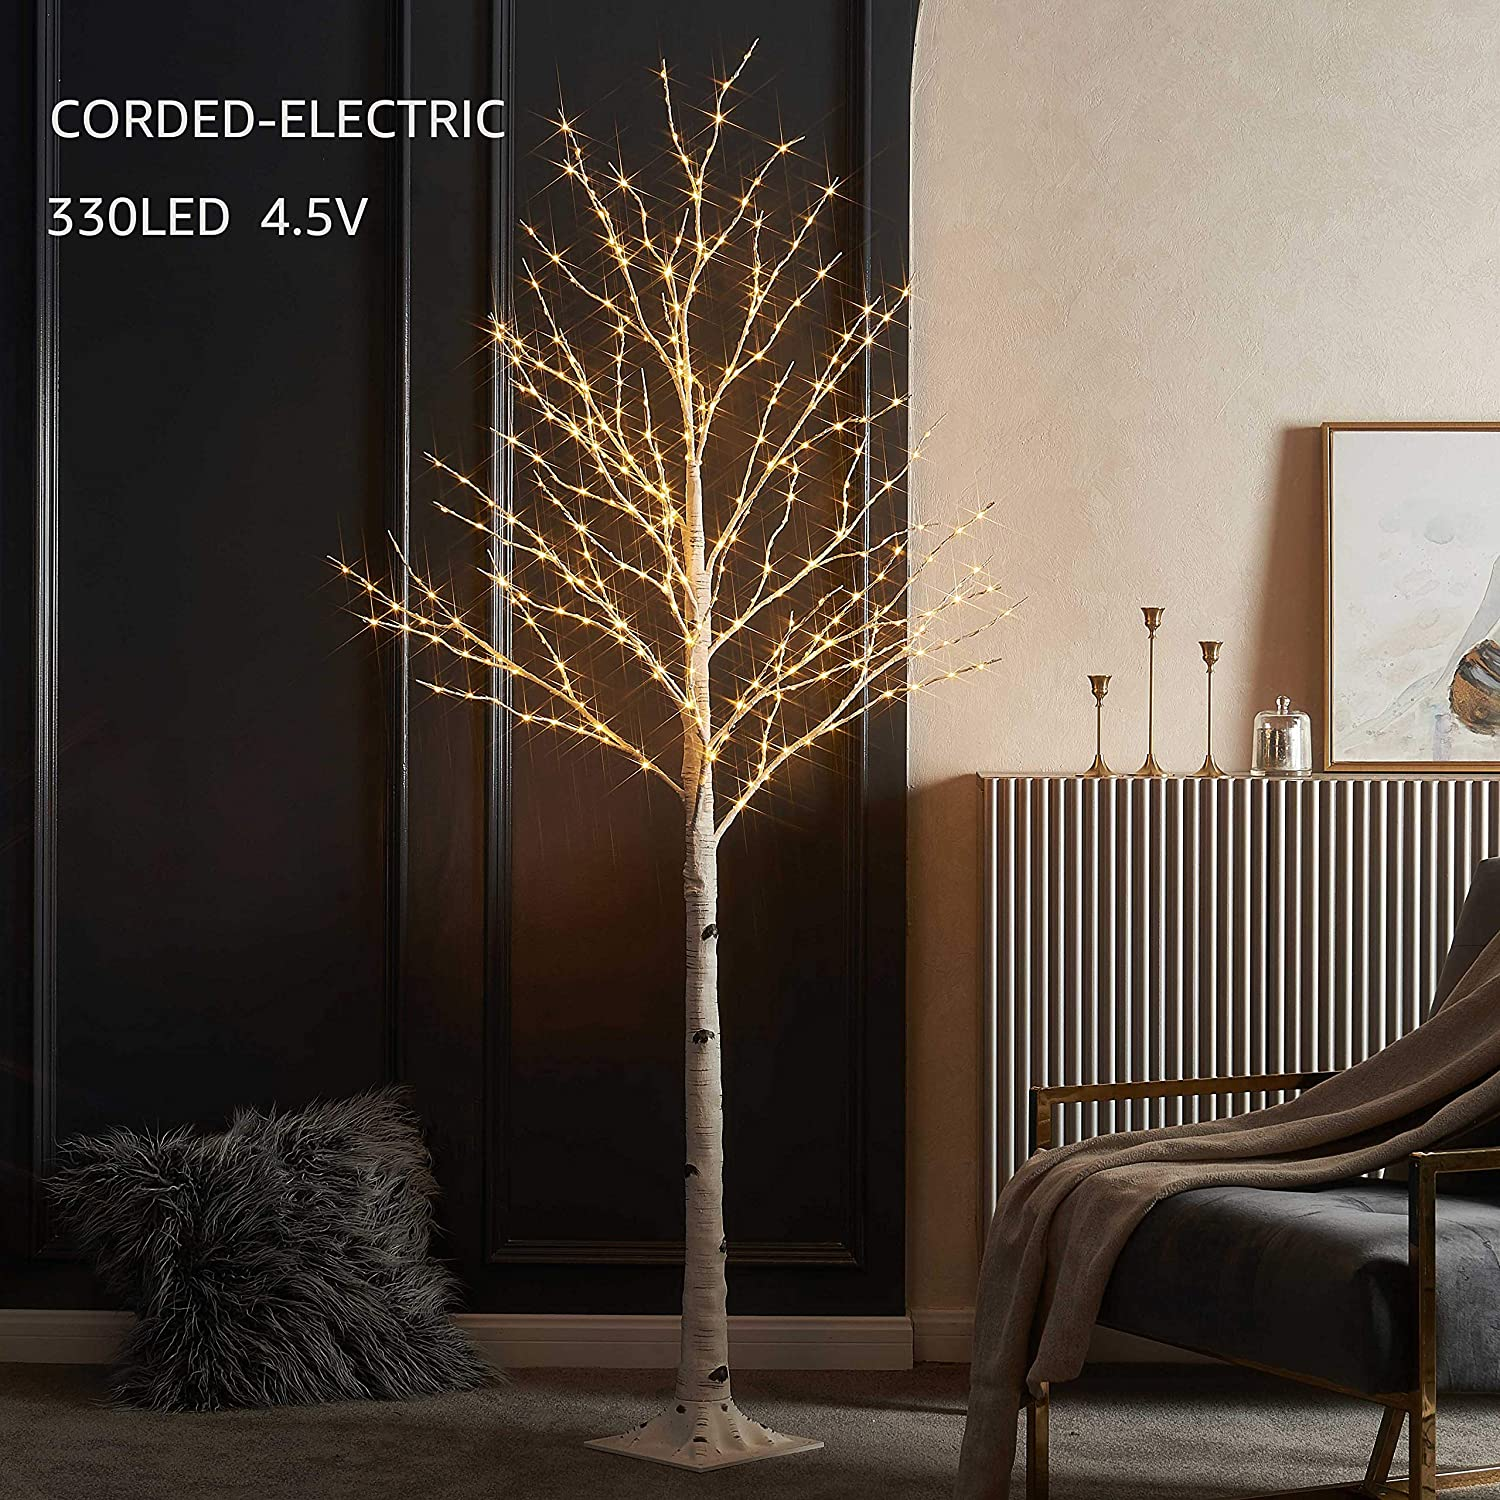 LITBLOOM Lighted Twig Birch Tree with Fairy Lights 6FT 330 Warm White LED for Indoor Outdoor Home Decoration